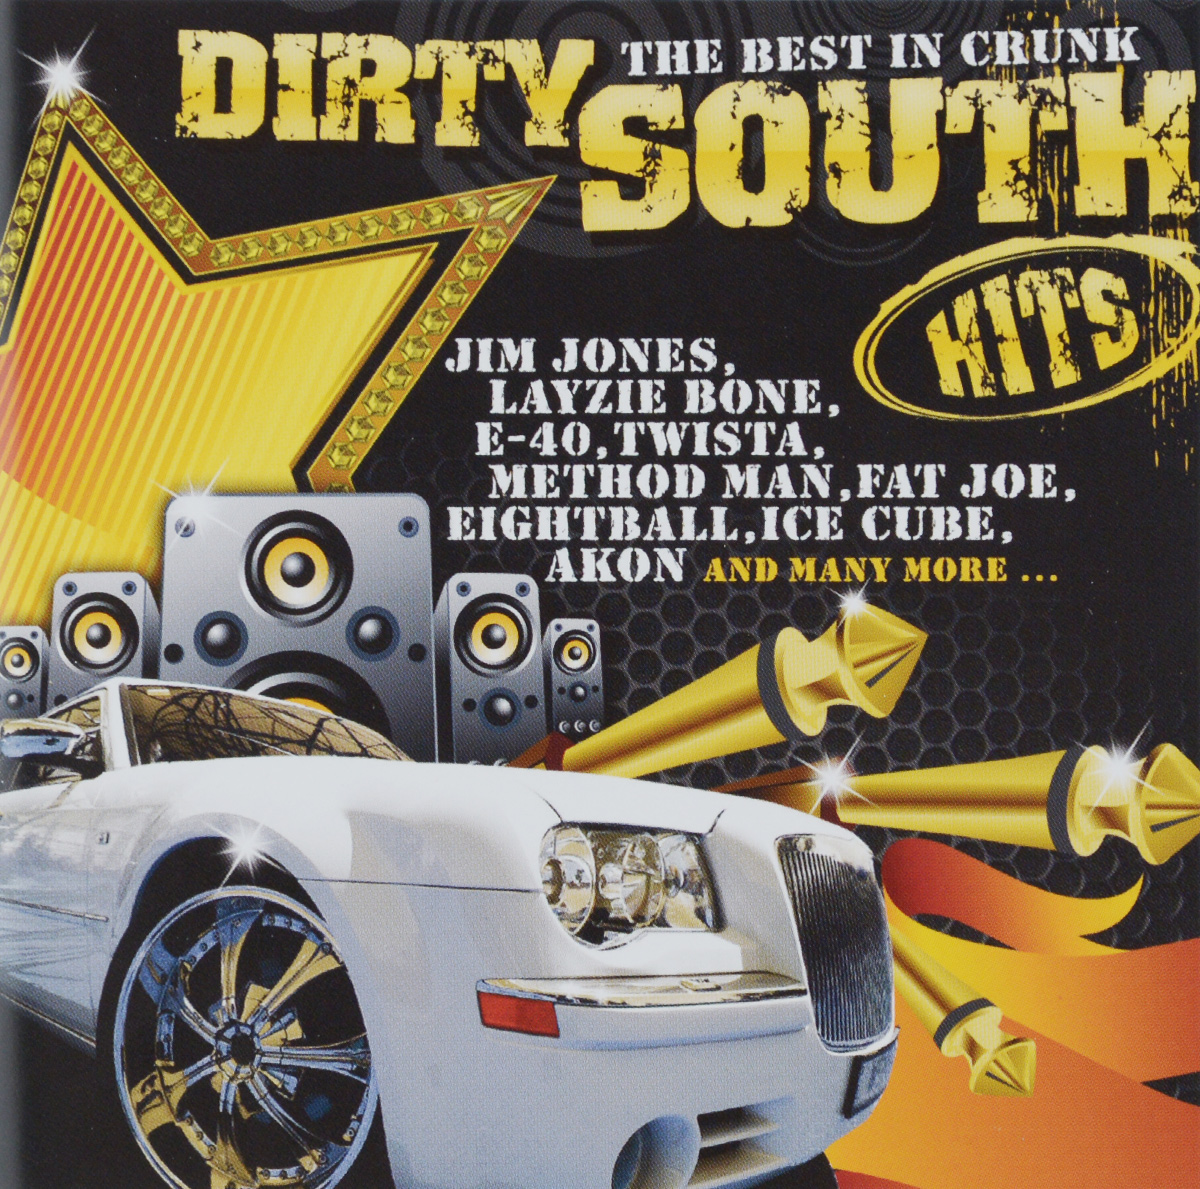 40 Cal Dirty South Hits. The Best In Crunk (2 CD) the best in hardtechno update 7 0 3 cd